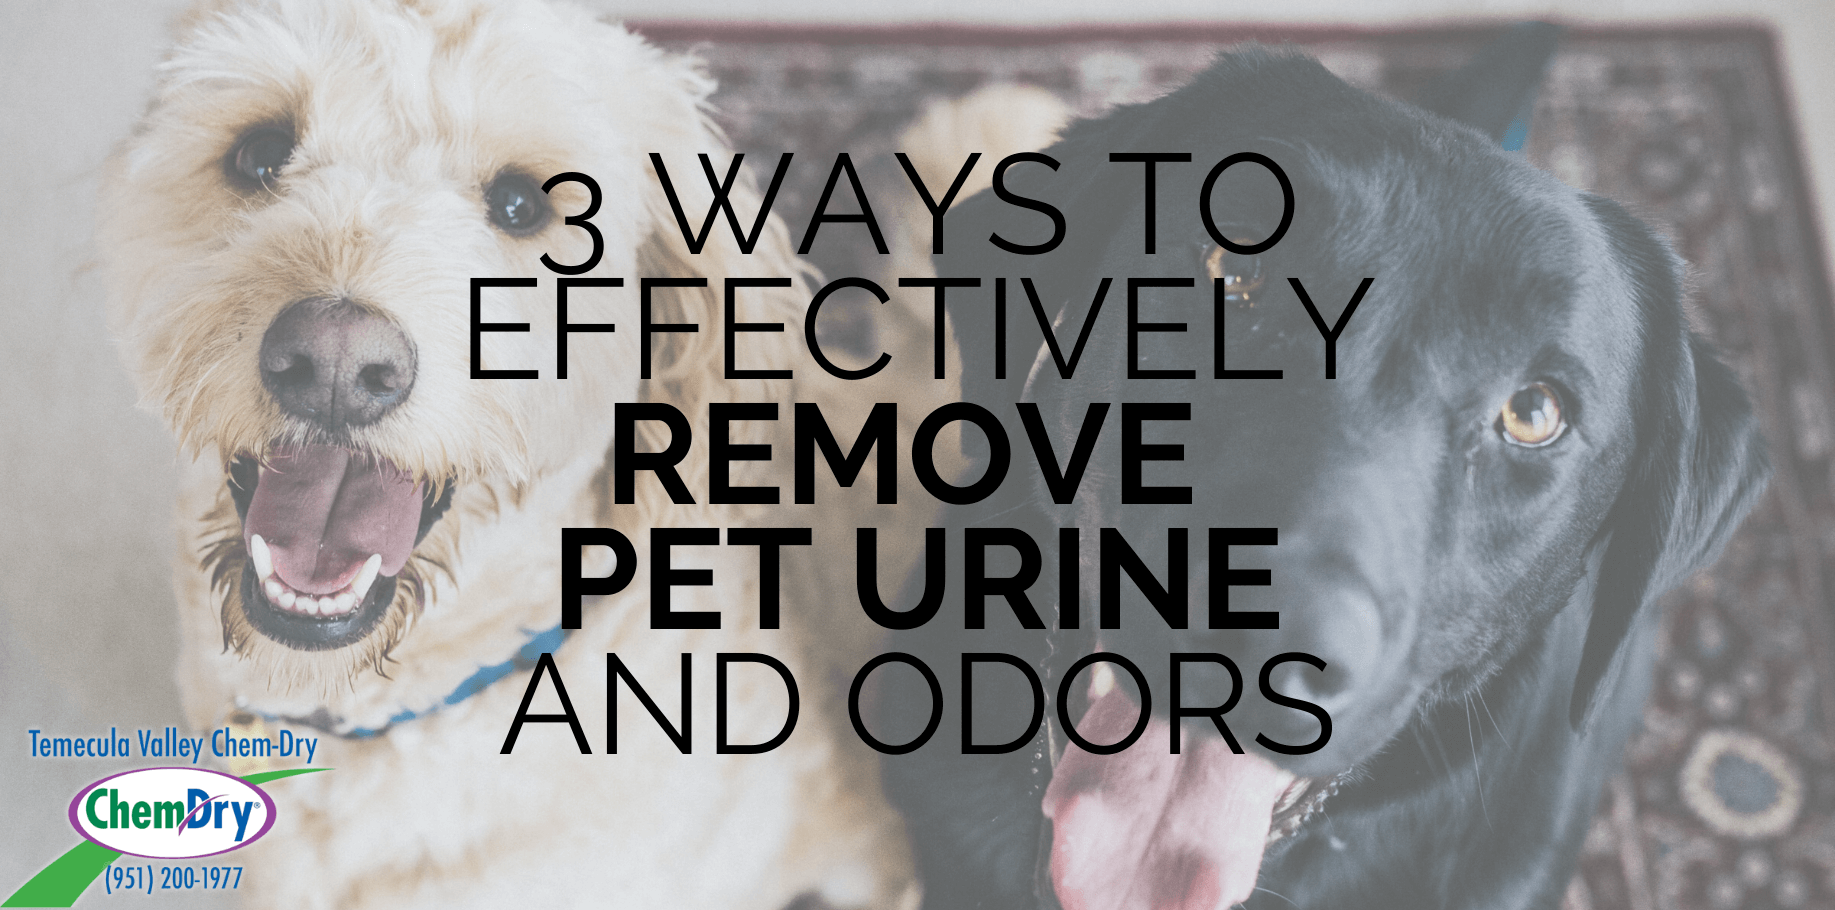 pet urine removal treatment Temecula Valley Chem-Dry